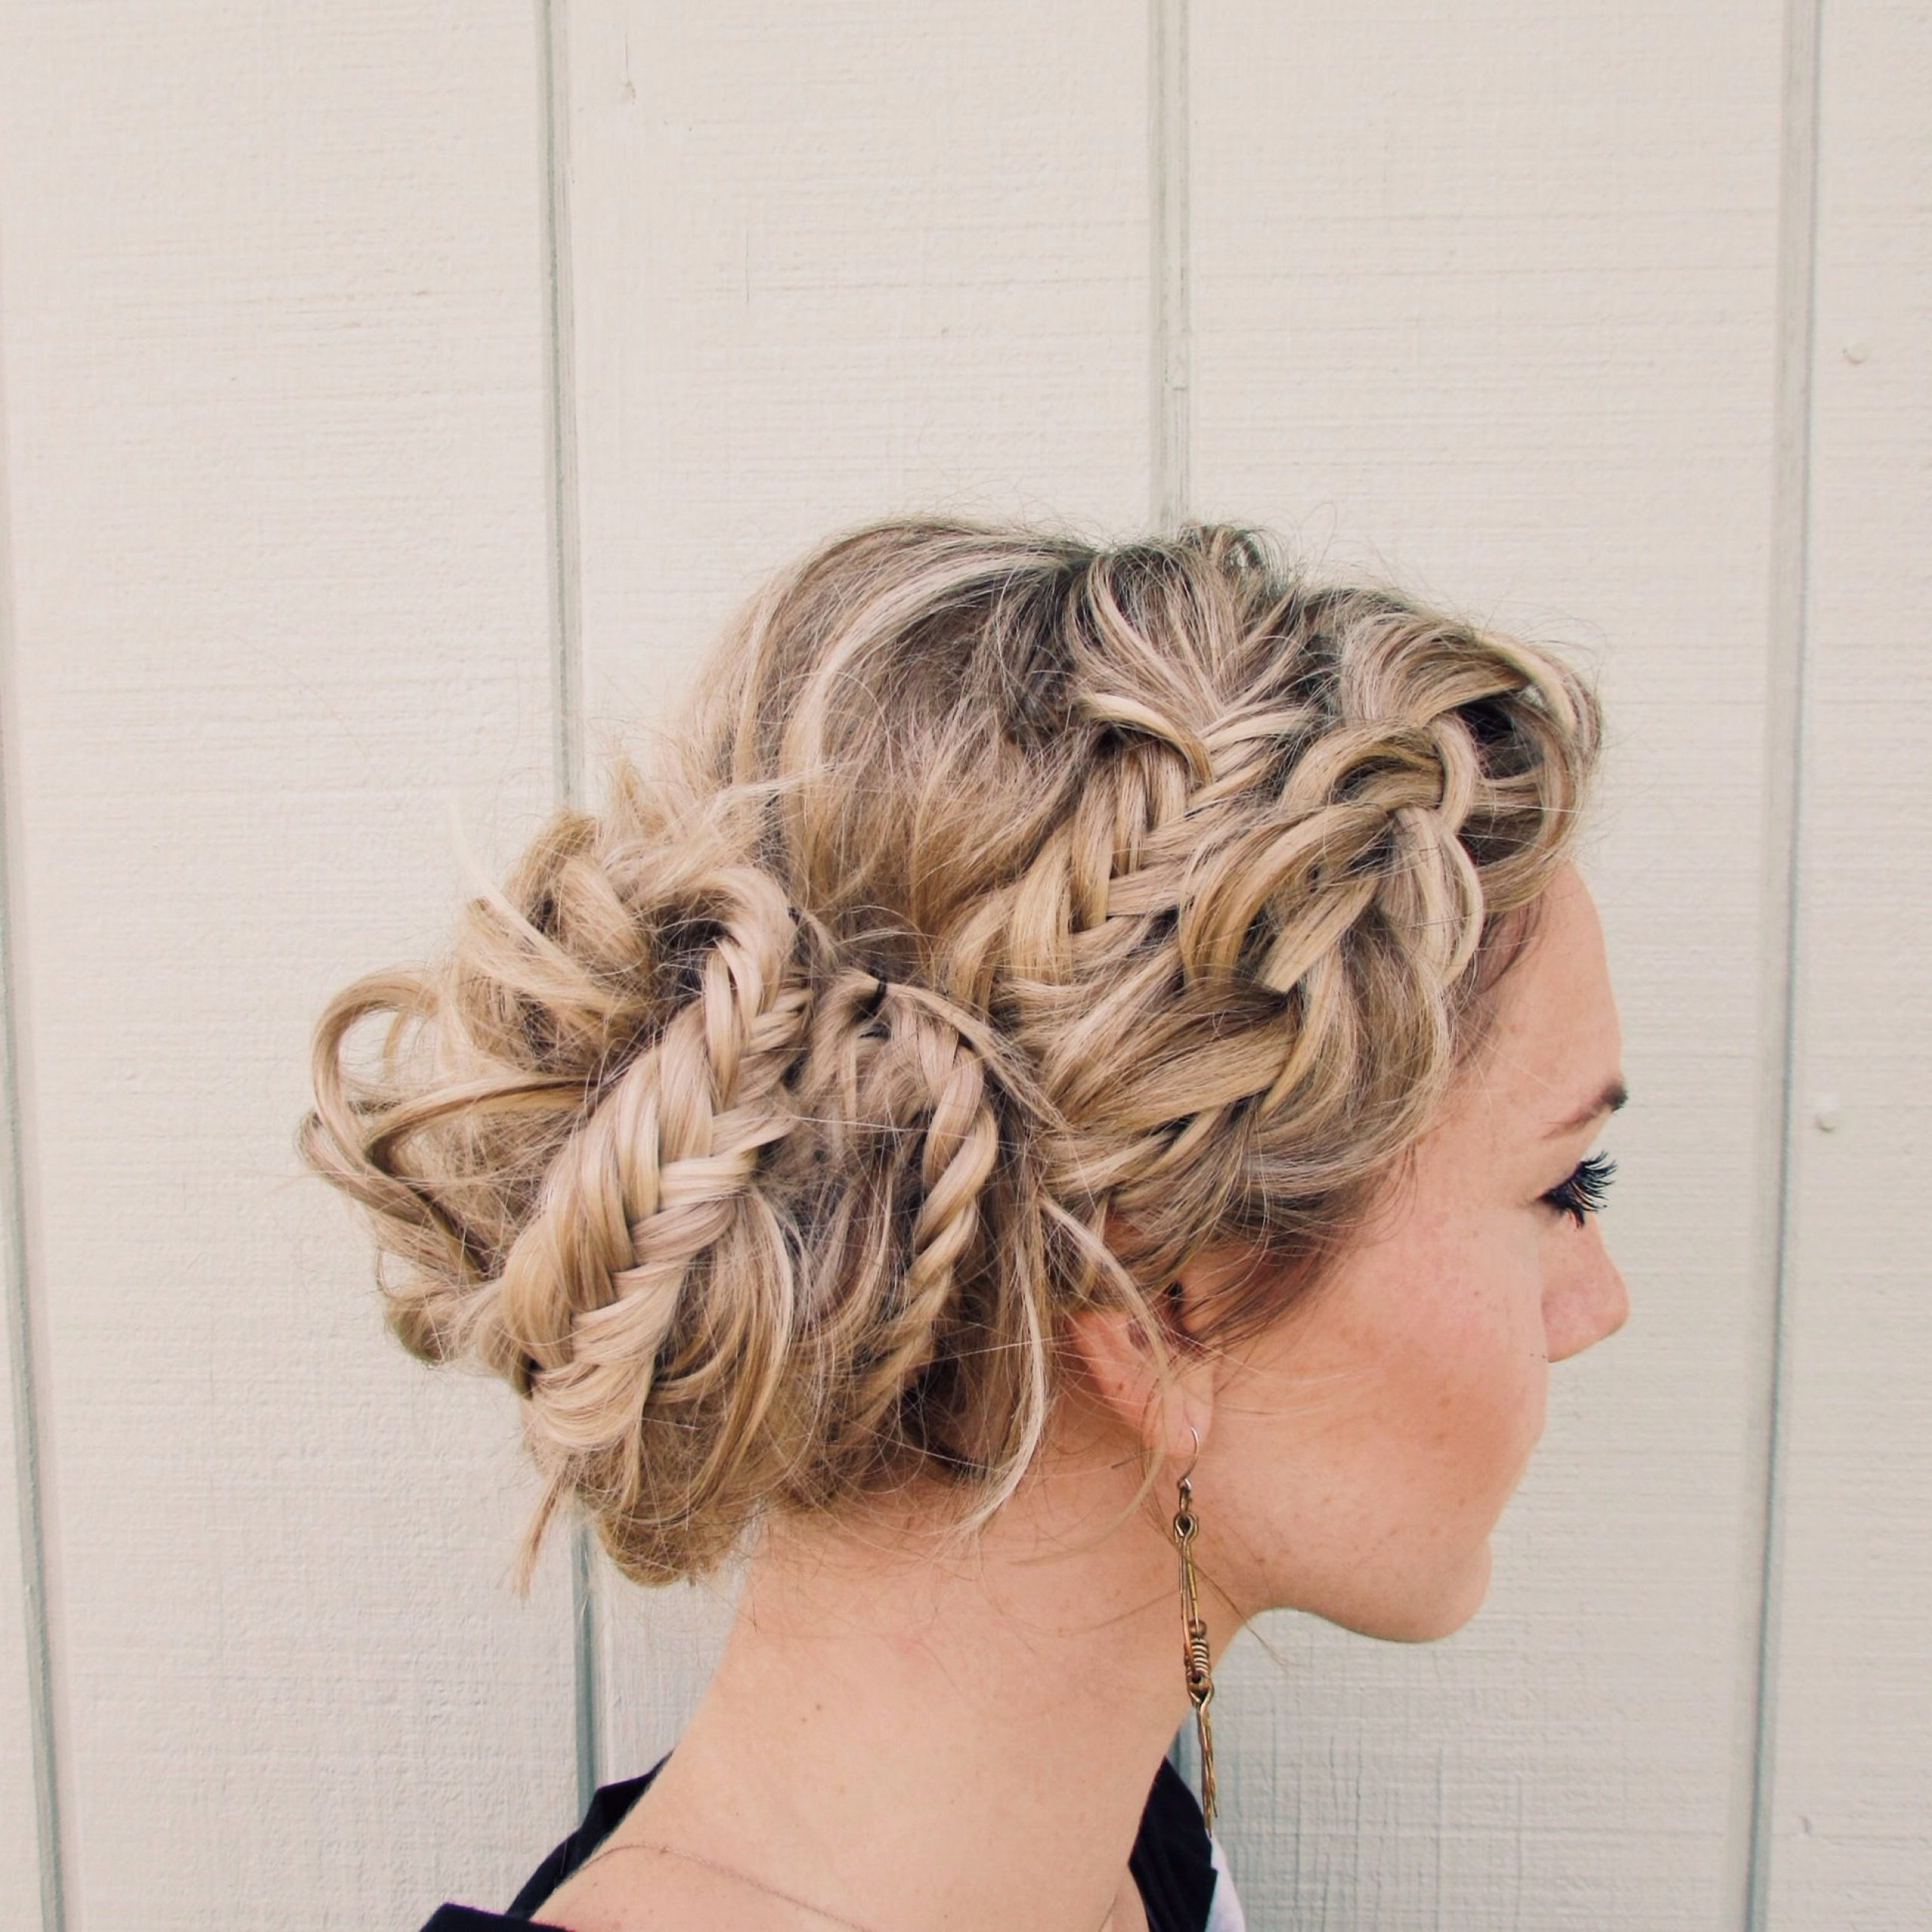 How To: Dutch Braid And Fishtail Braids Messy Bun (View 17 of 20)